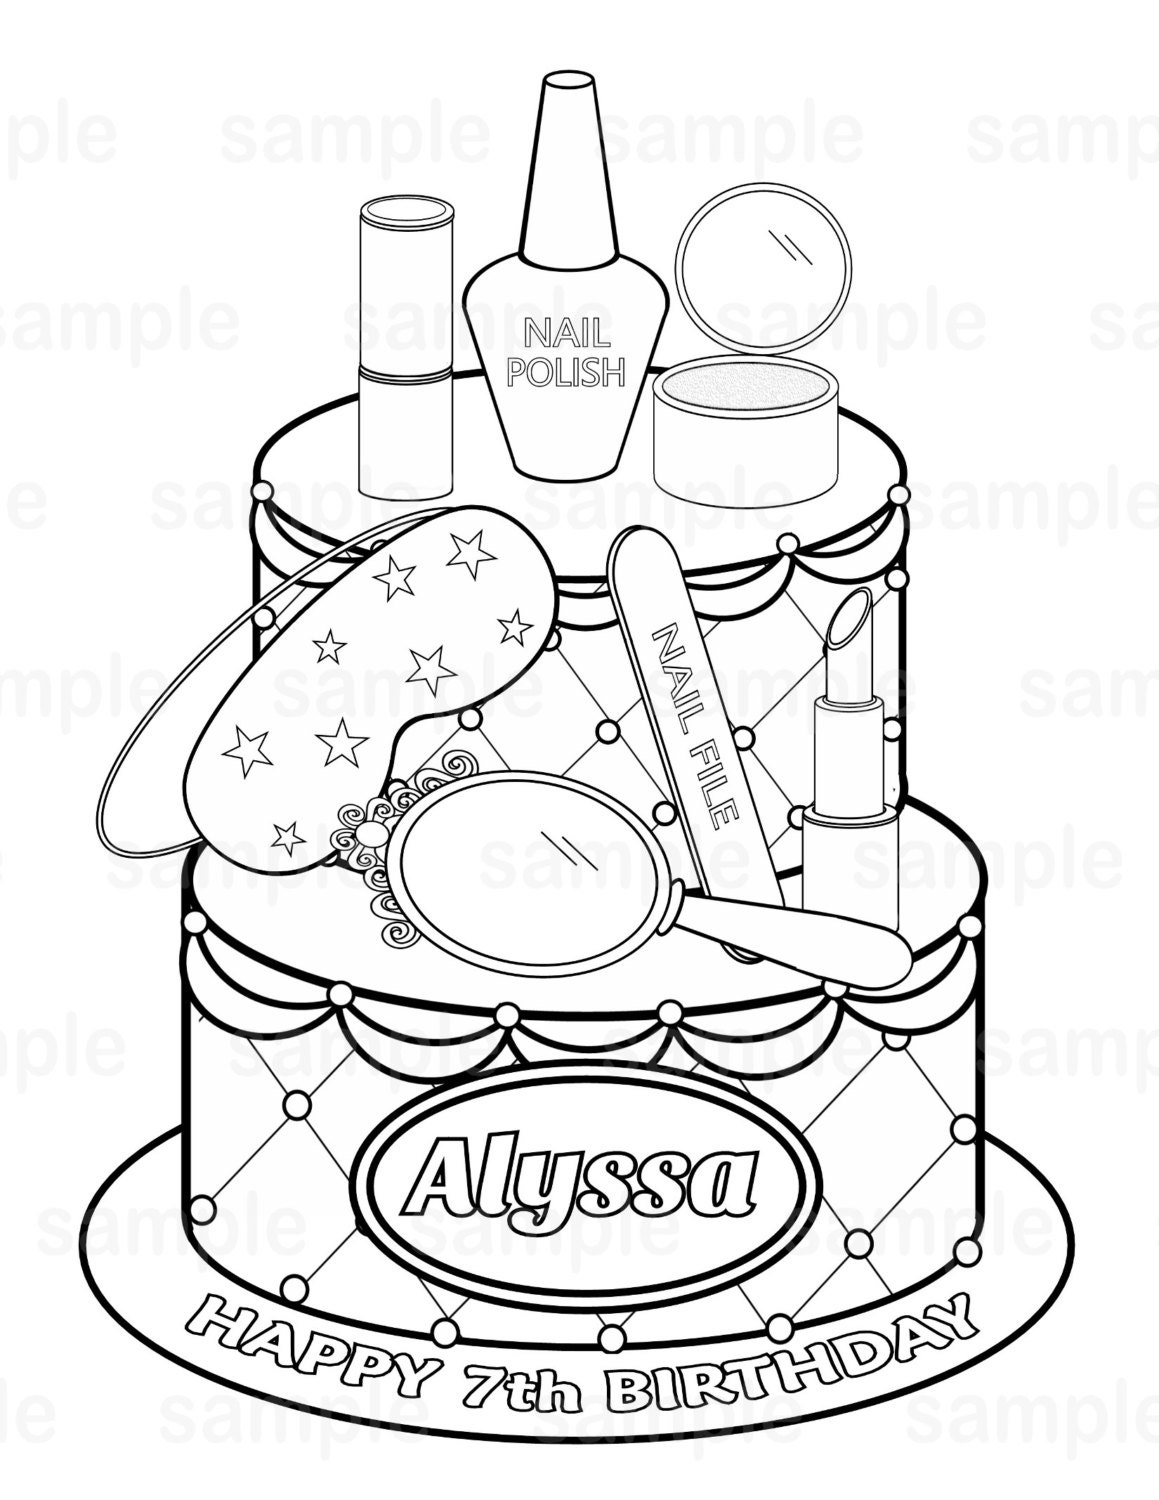 nail salon coloring pages - photo #29